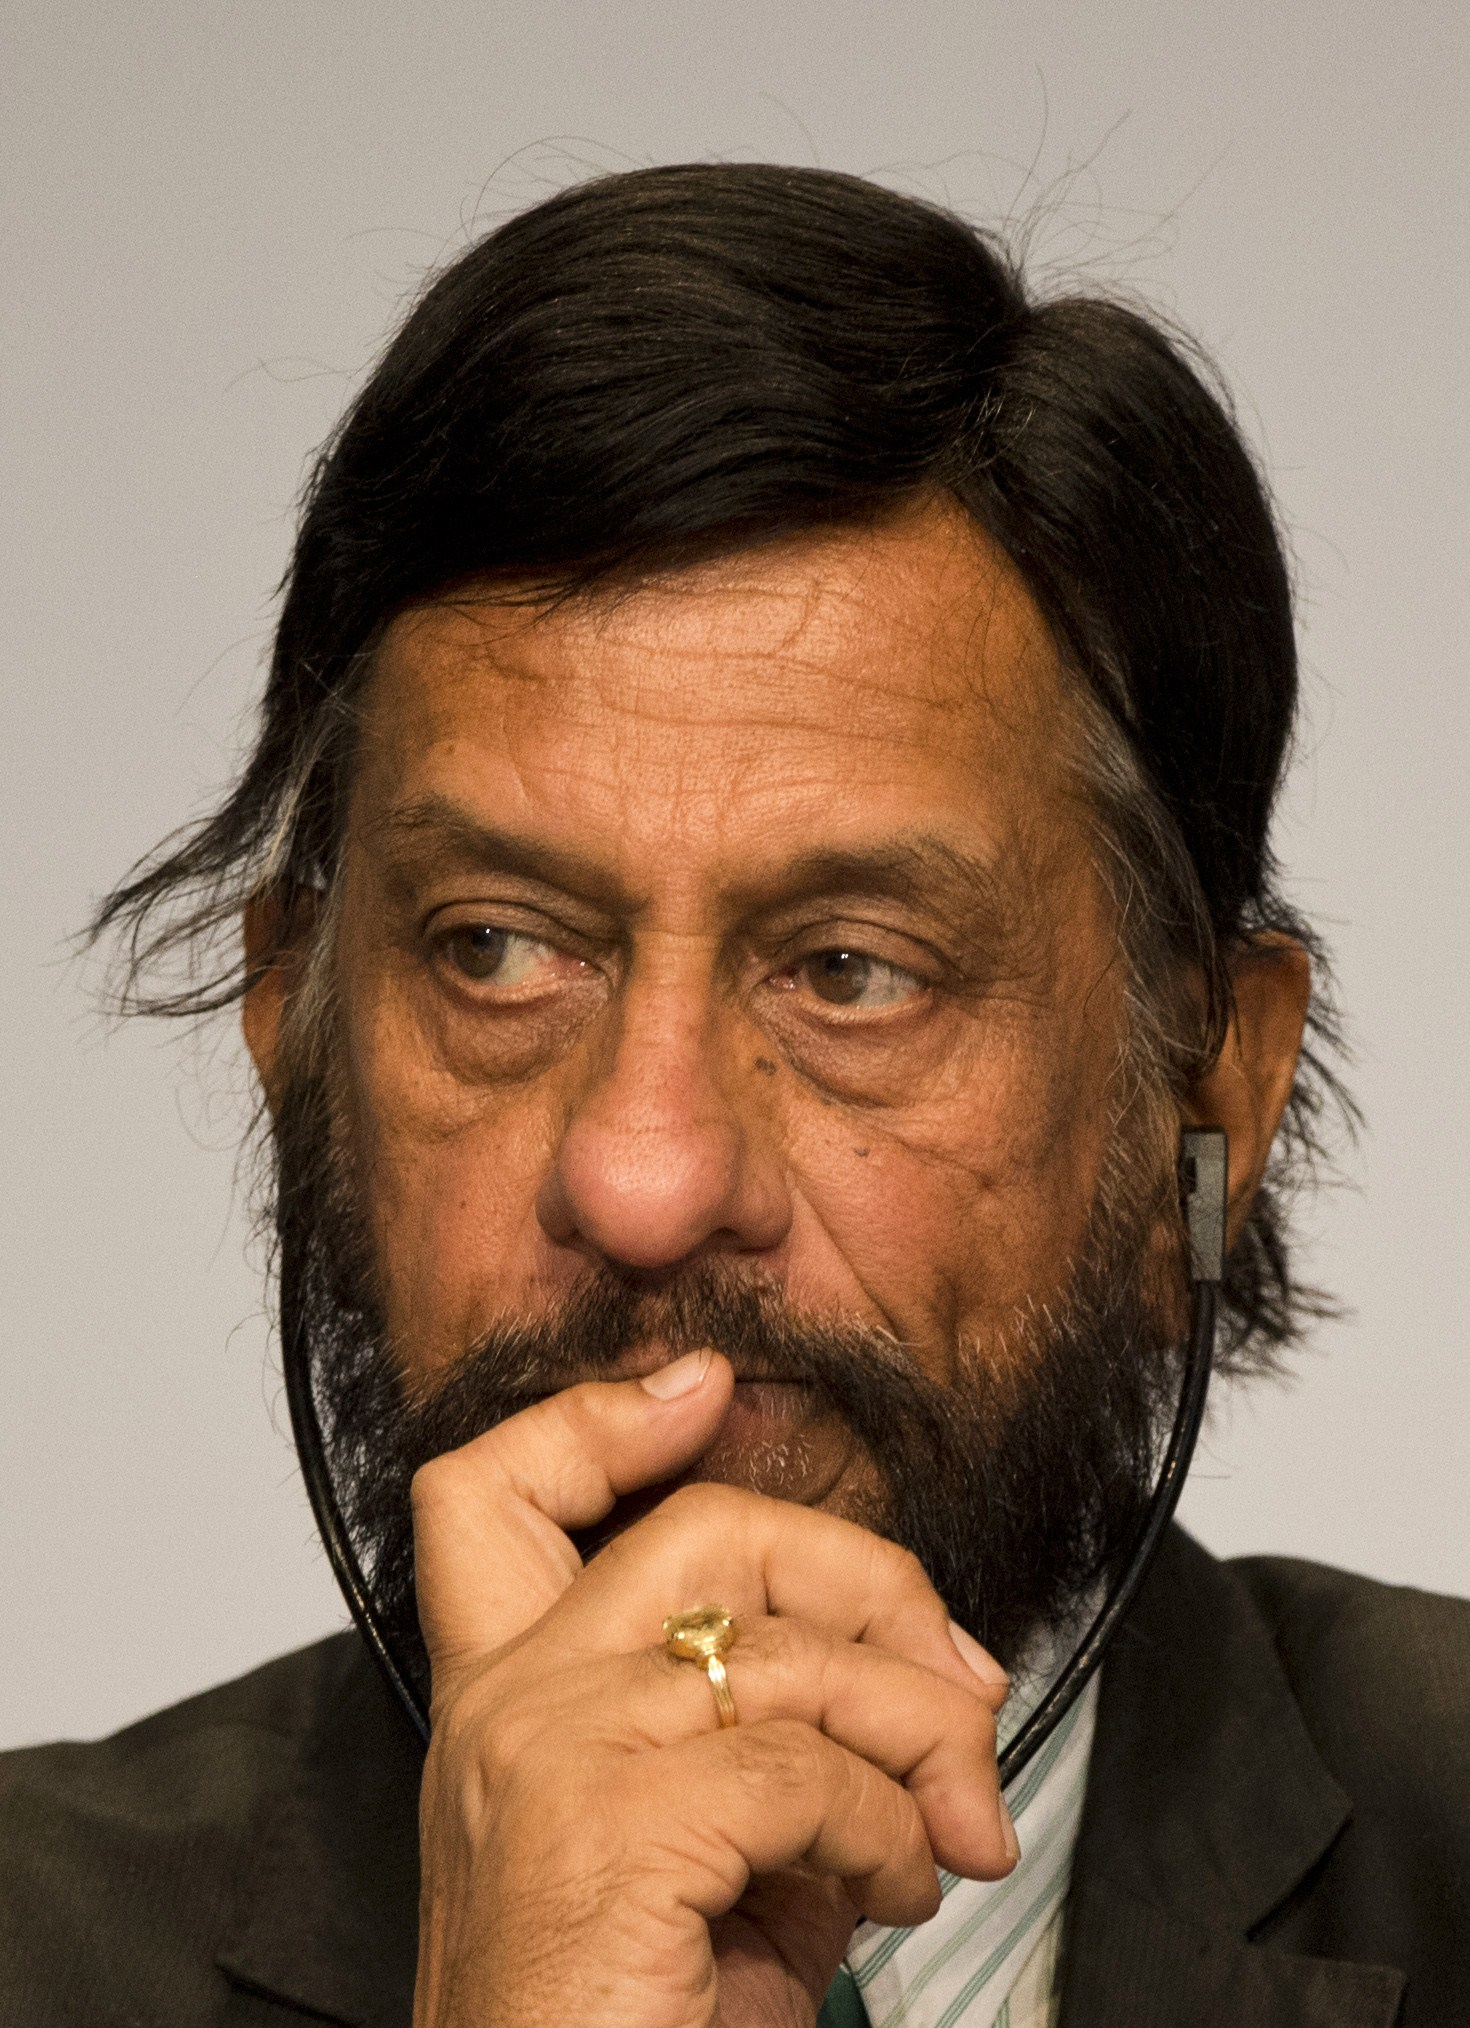 Rajenda Pachauri: forced to quit his position as IPCC chairman after sex harassment allegations. (Getty)